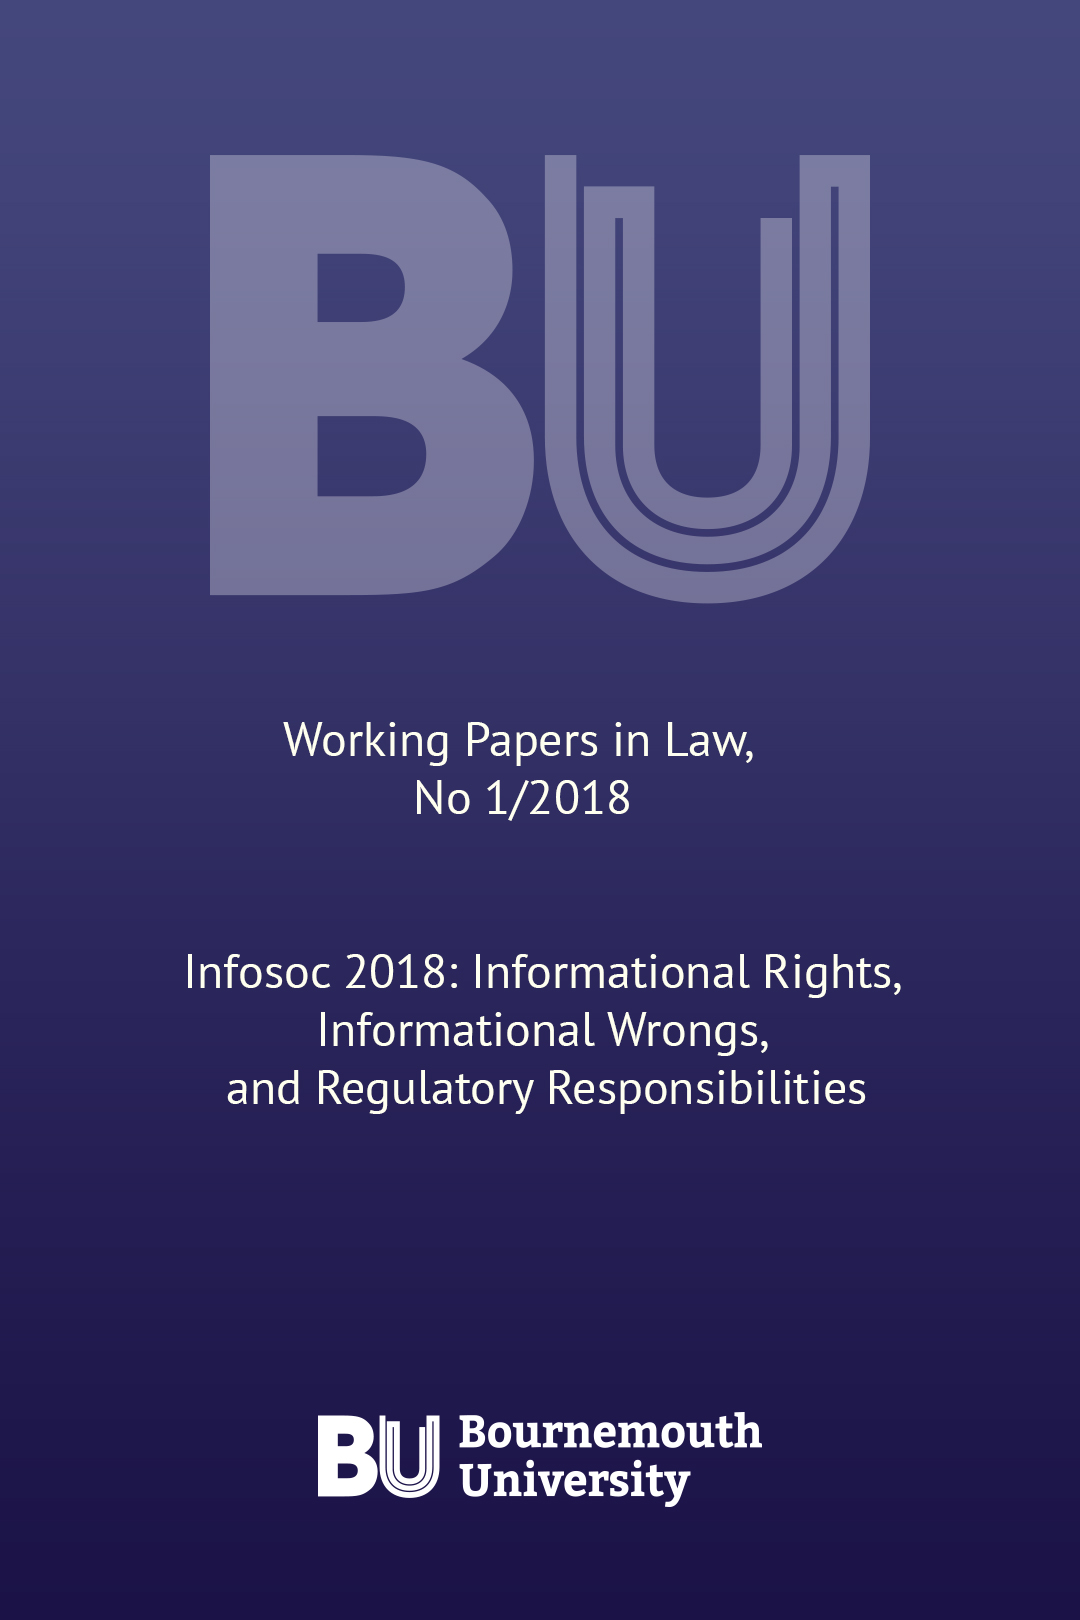 Infosoc 2018: Informational Rights, Informational Wrongs, and Regulatory Responsibilities